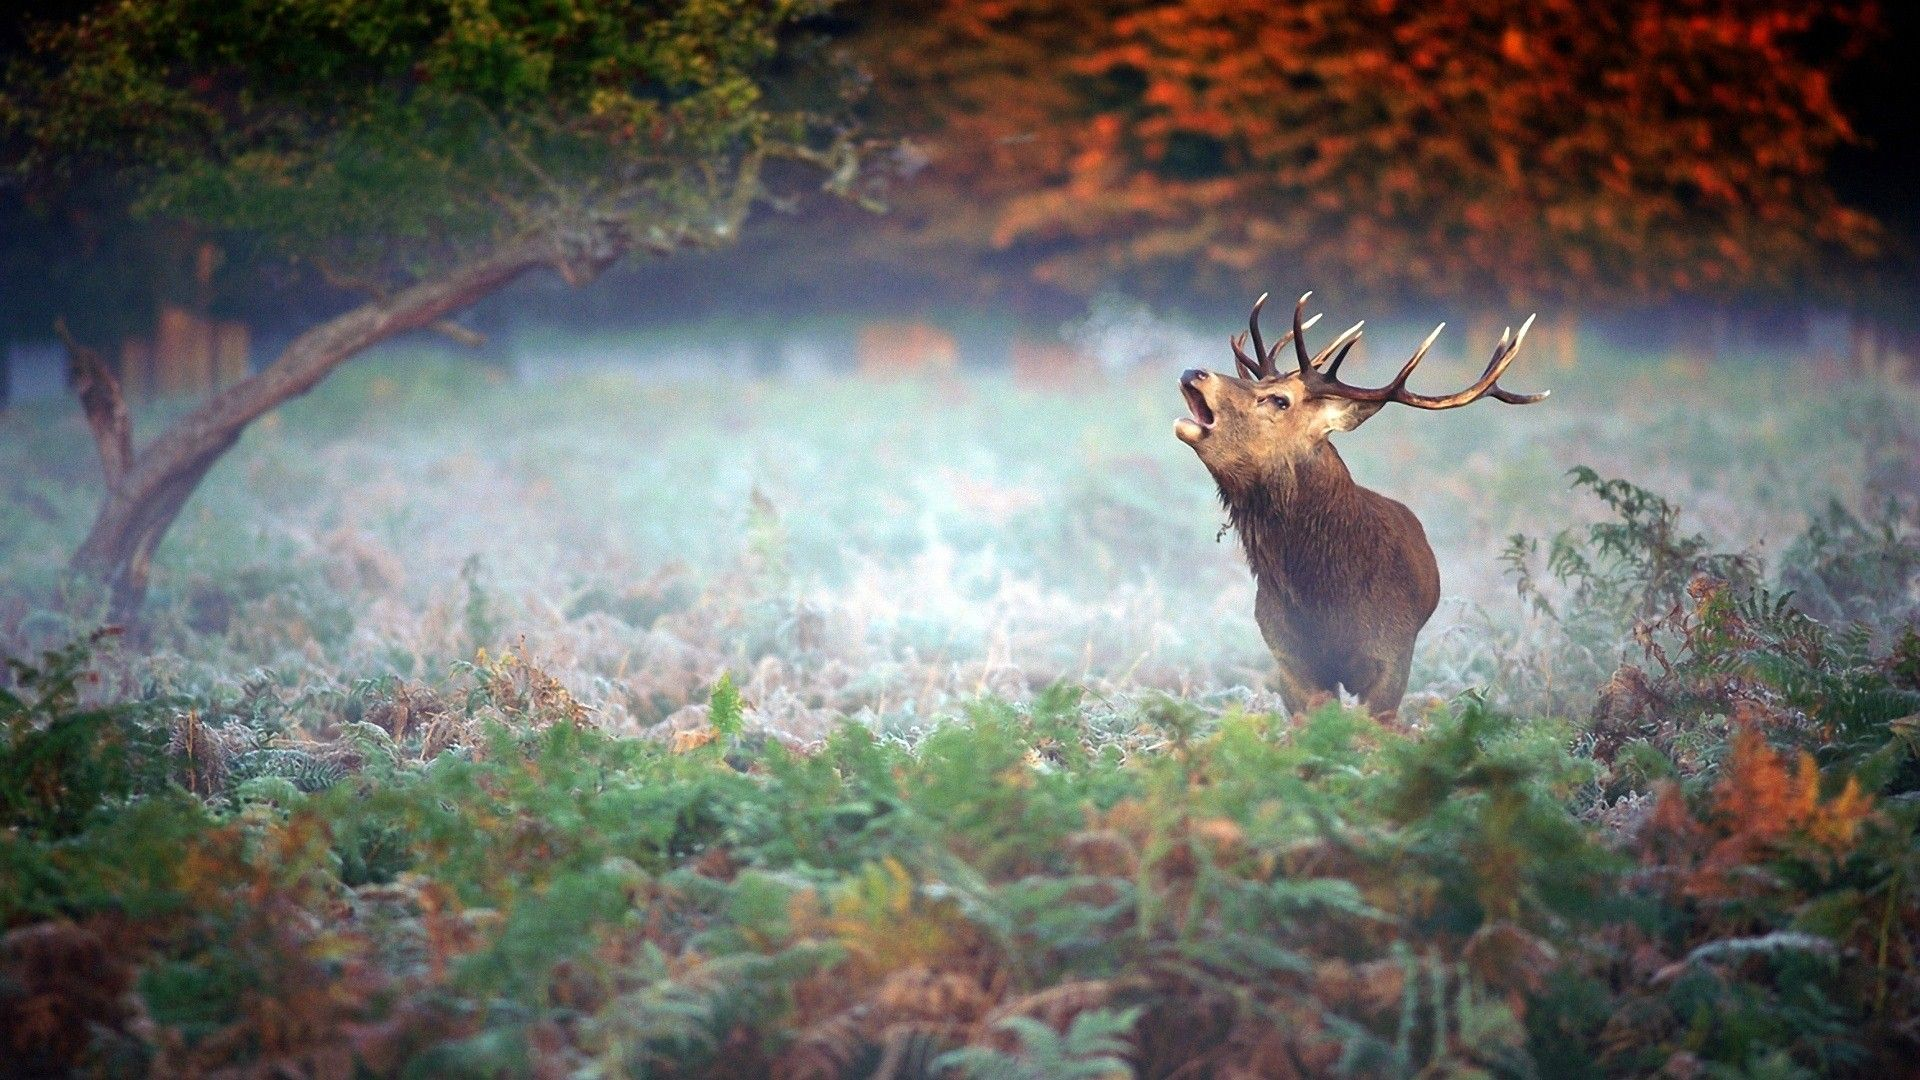 Best Wallpaper Forest Deer - 77f5e5e5dc13d4e8e4b06be5e47d4444  Photograph_611537 .jpg